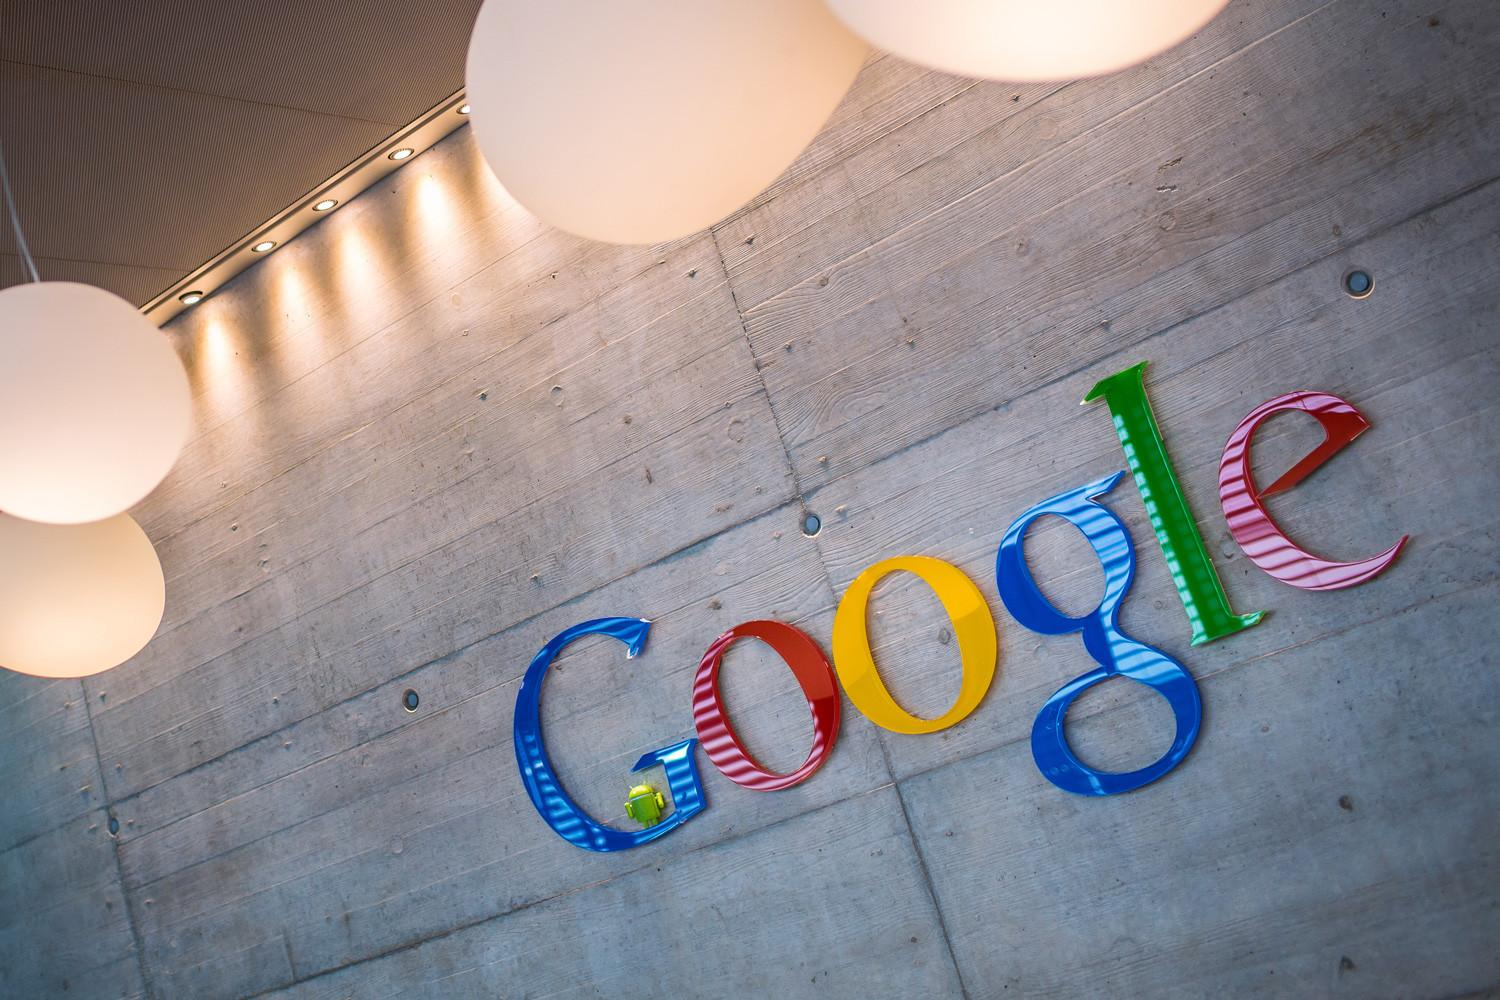 Ads for Google products lord over most of its search results, study finds